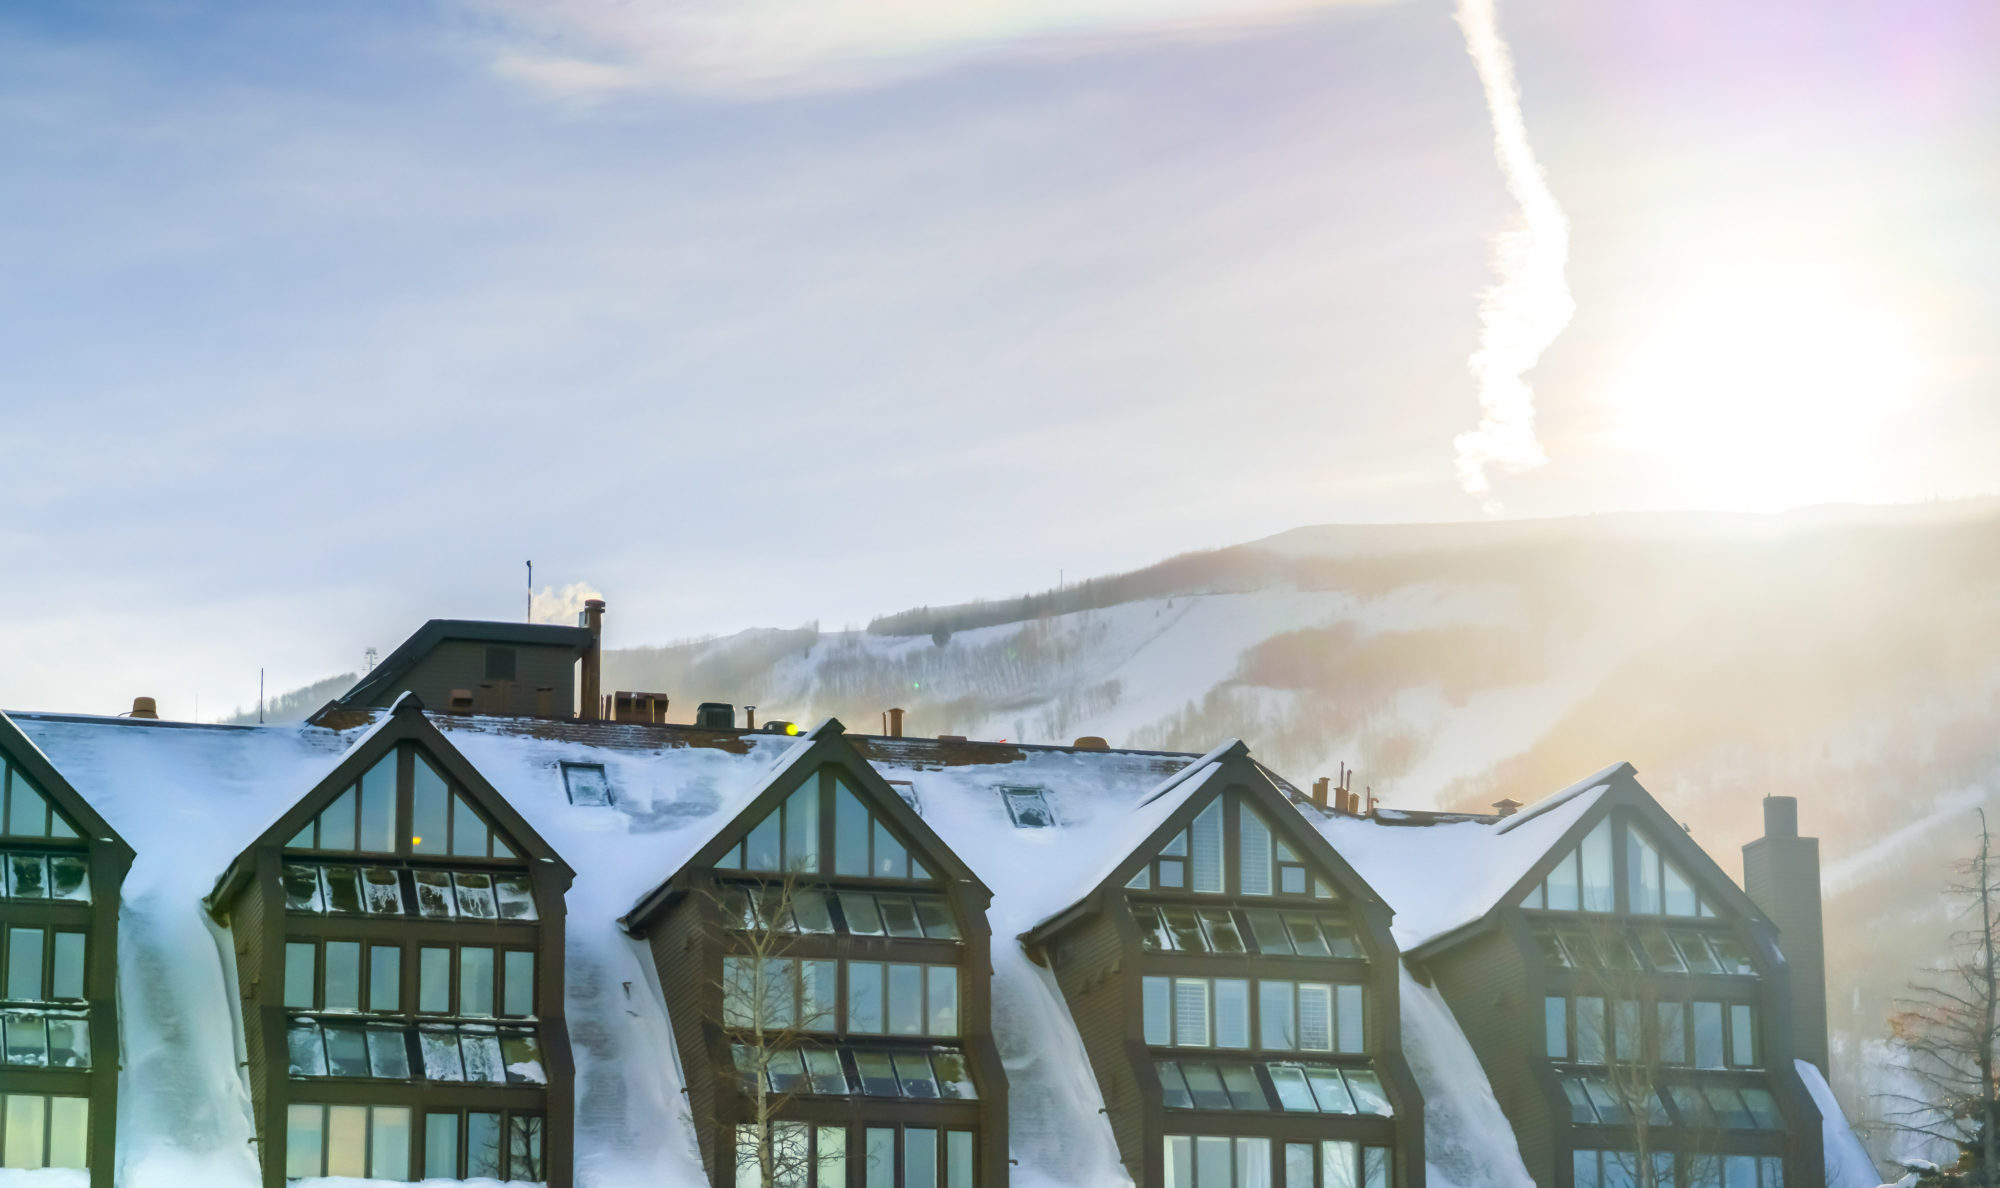 Like other rural mountain towns, Park City real estate is booming. So much so that none of the population can afford to live AND work there.